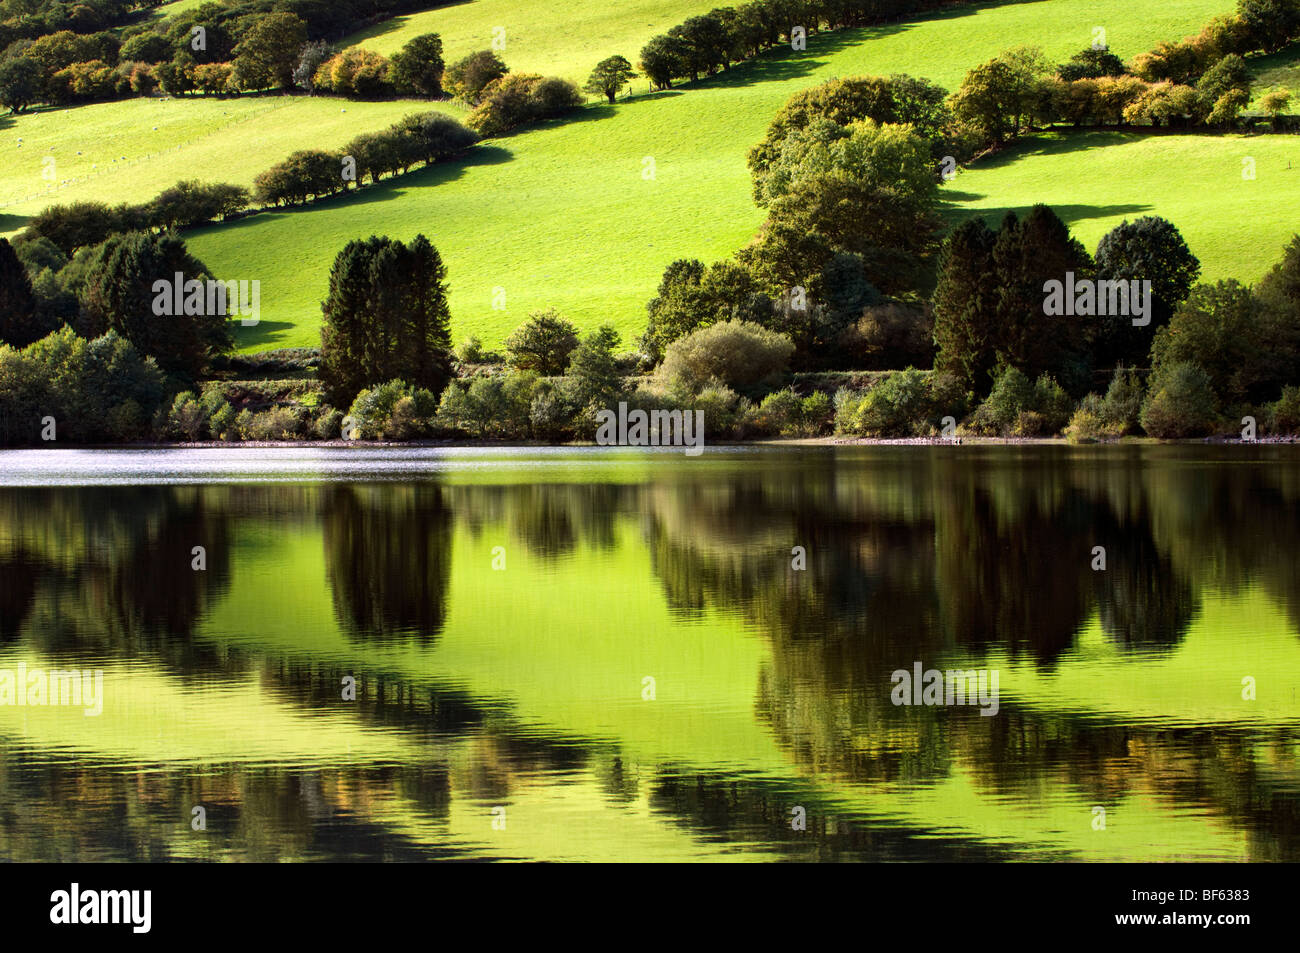 Perfect reflection of green fields at Talybont reservoir, Brecon Beacons in Wales taken on beautiful bright sunny - Stock Image